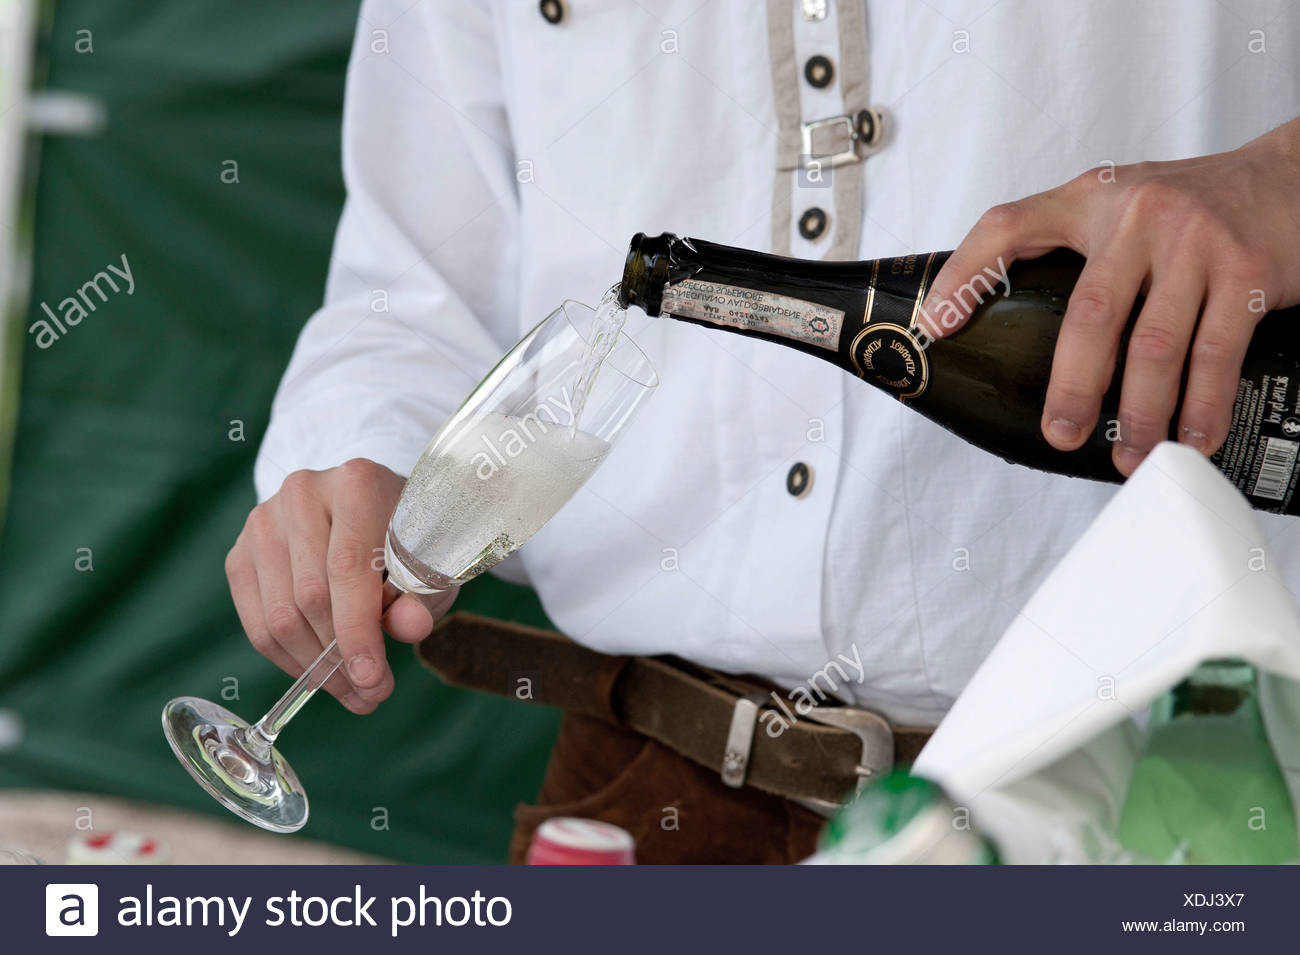 Man pouring a glass of champagne, sparkling wine or prosecco, close-up of hands Stock Photo